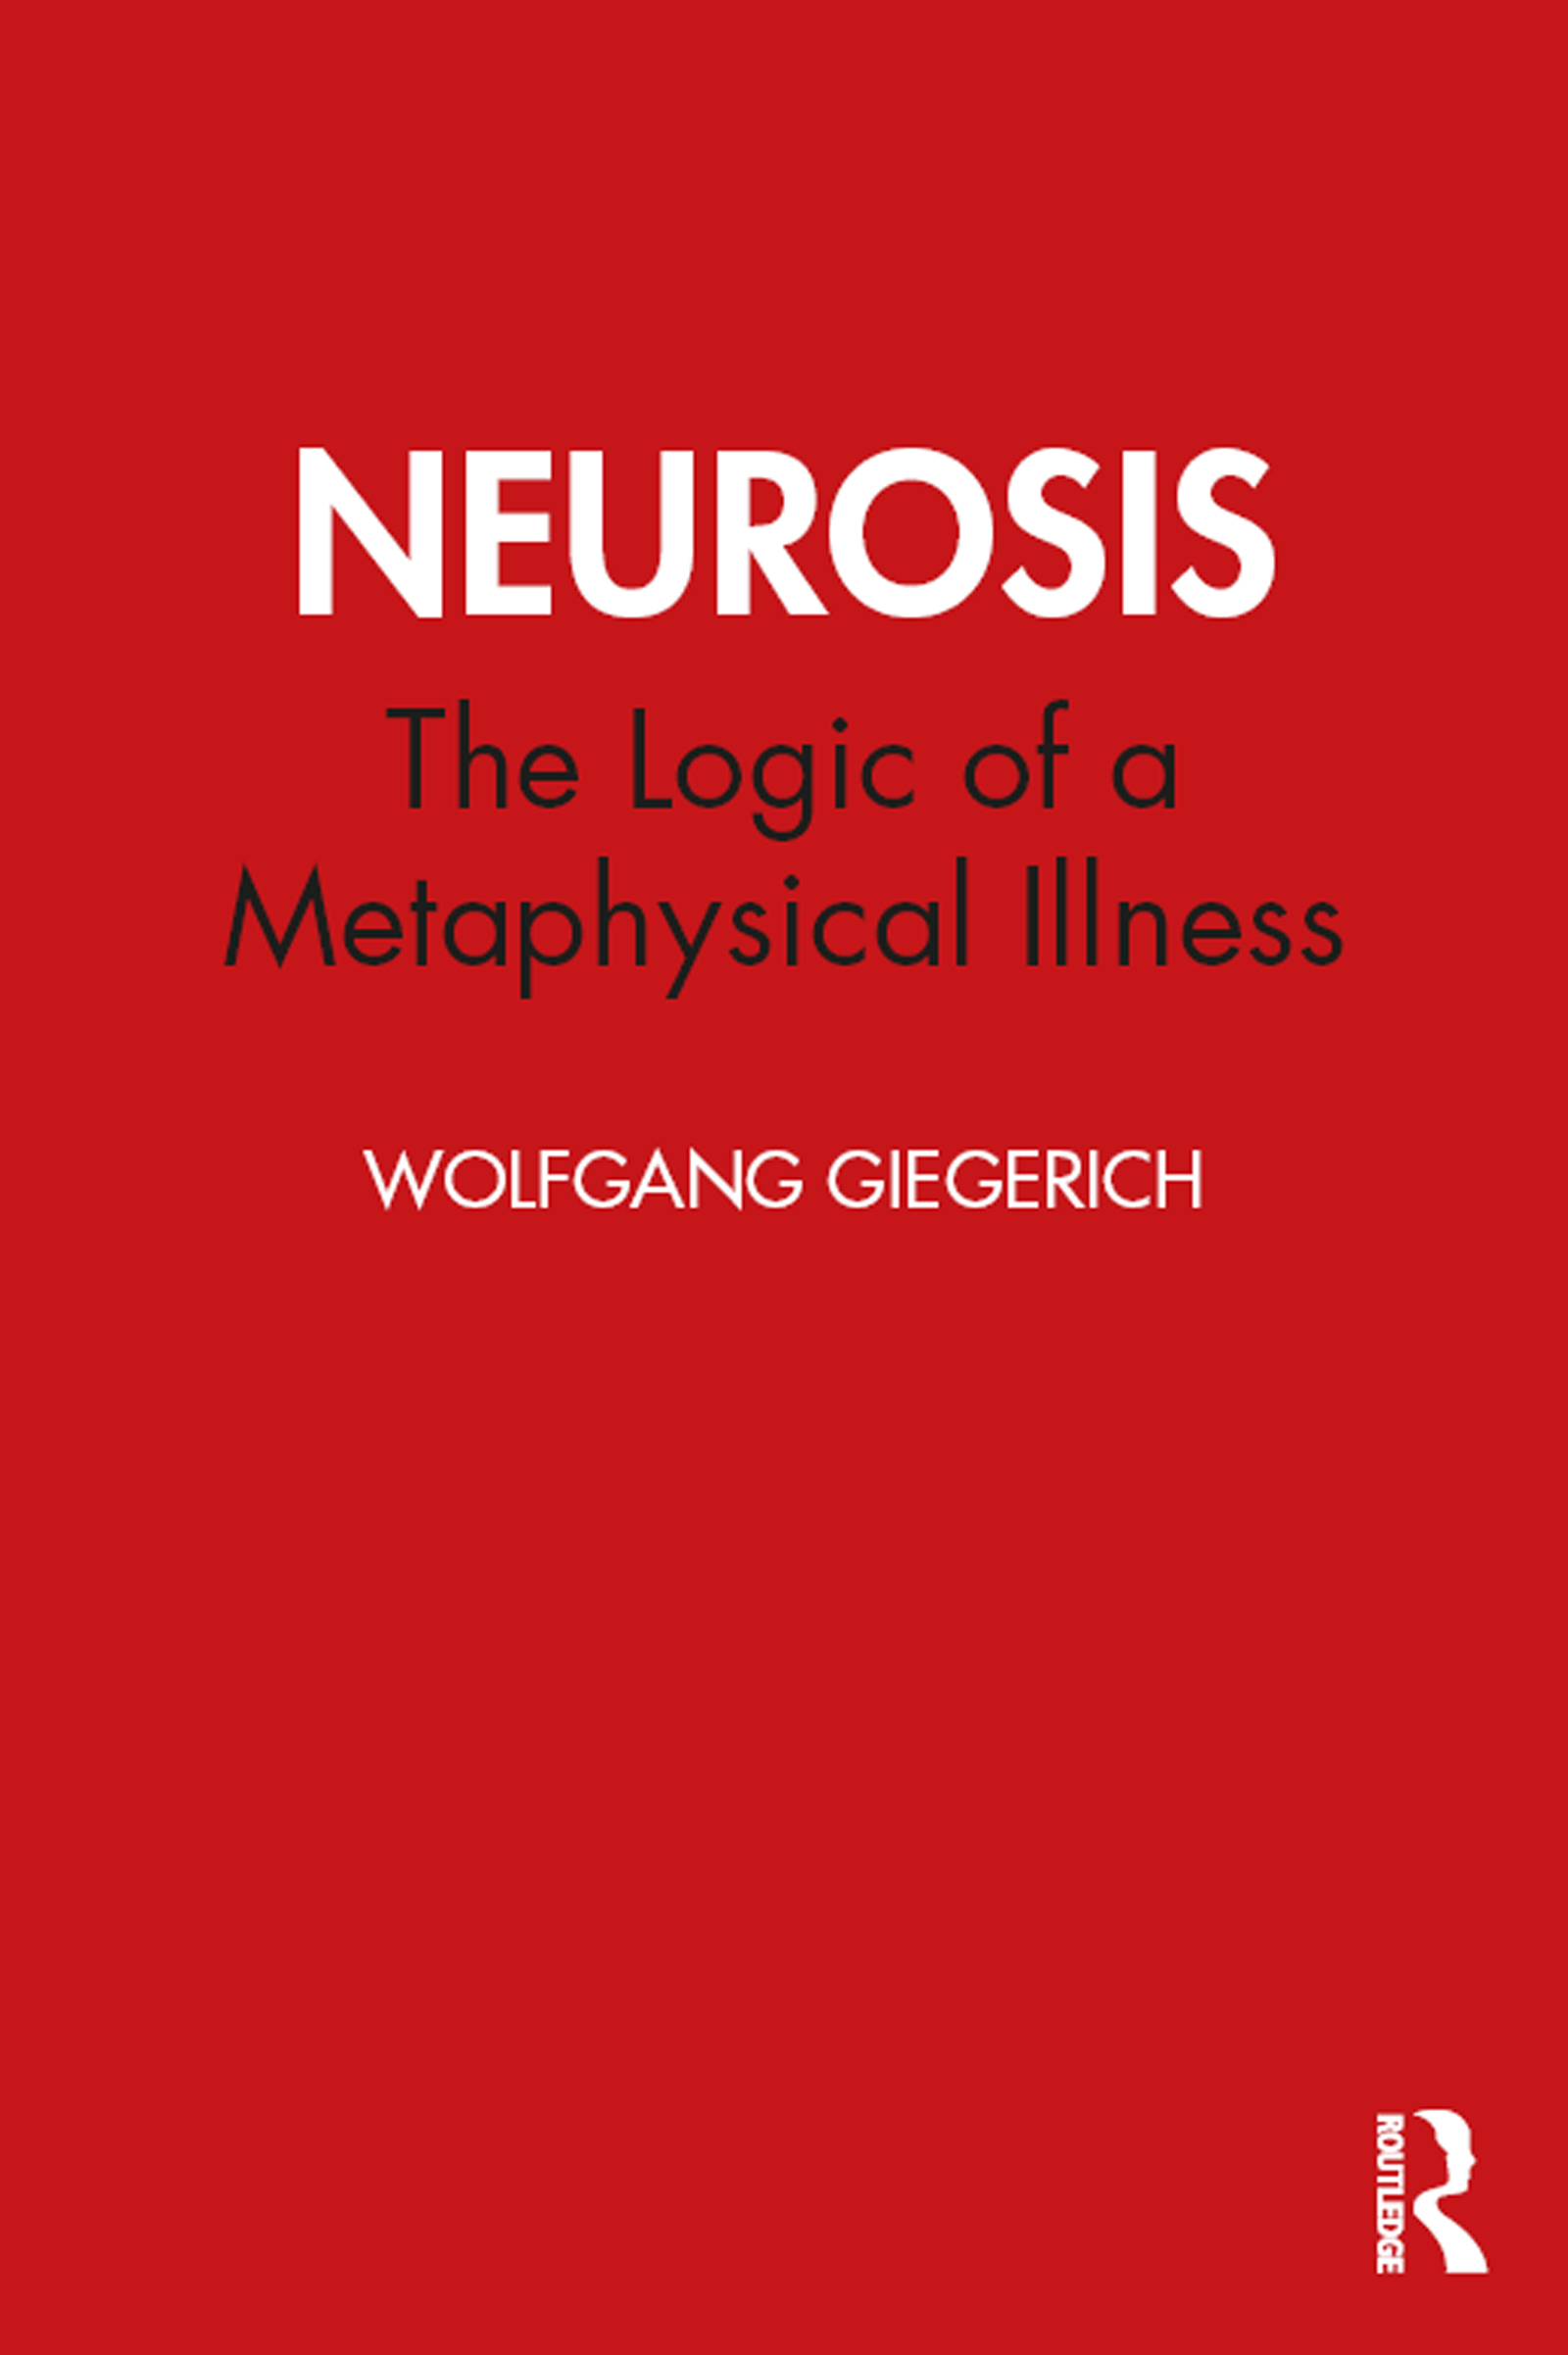 Neurosis: The Logic of a Metaphysical Illness book cover